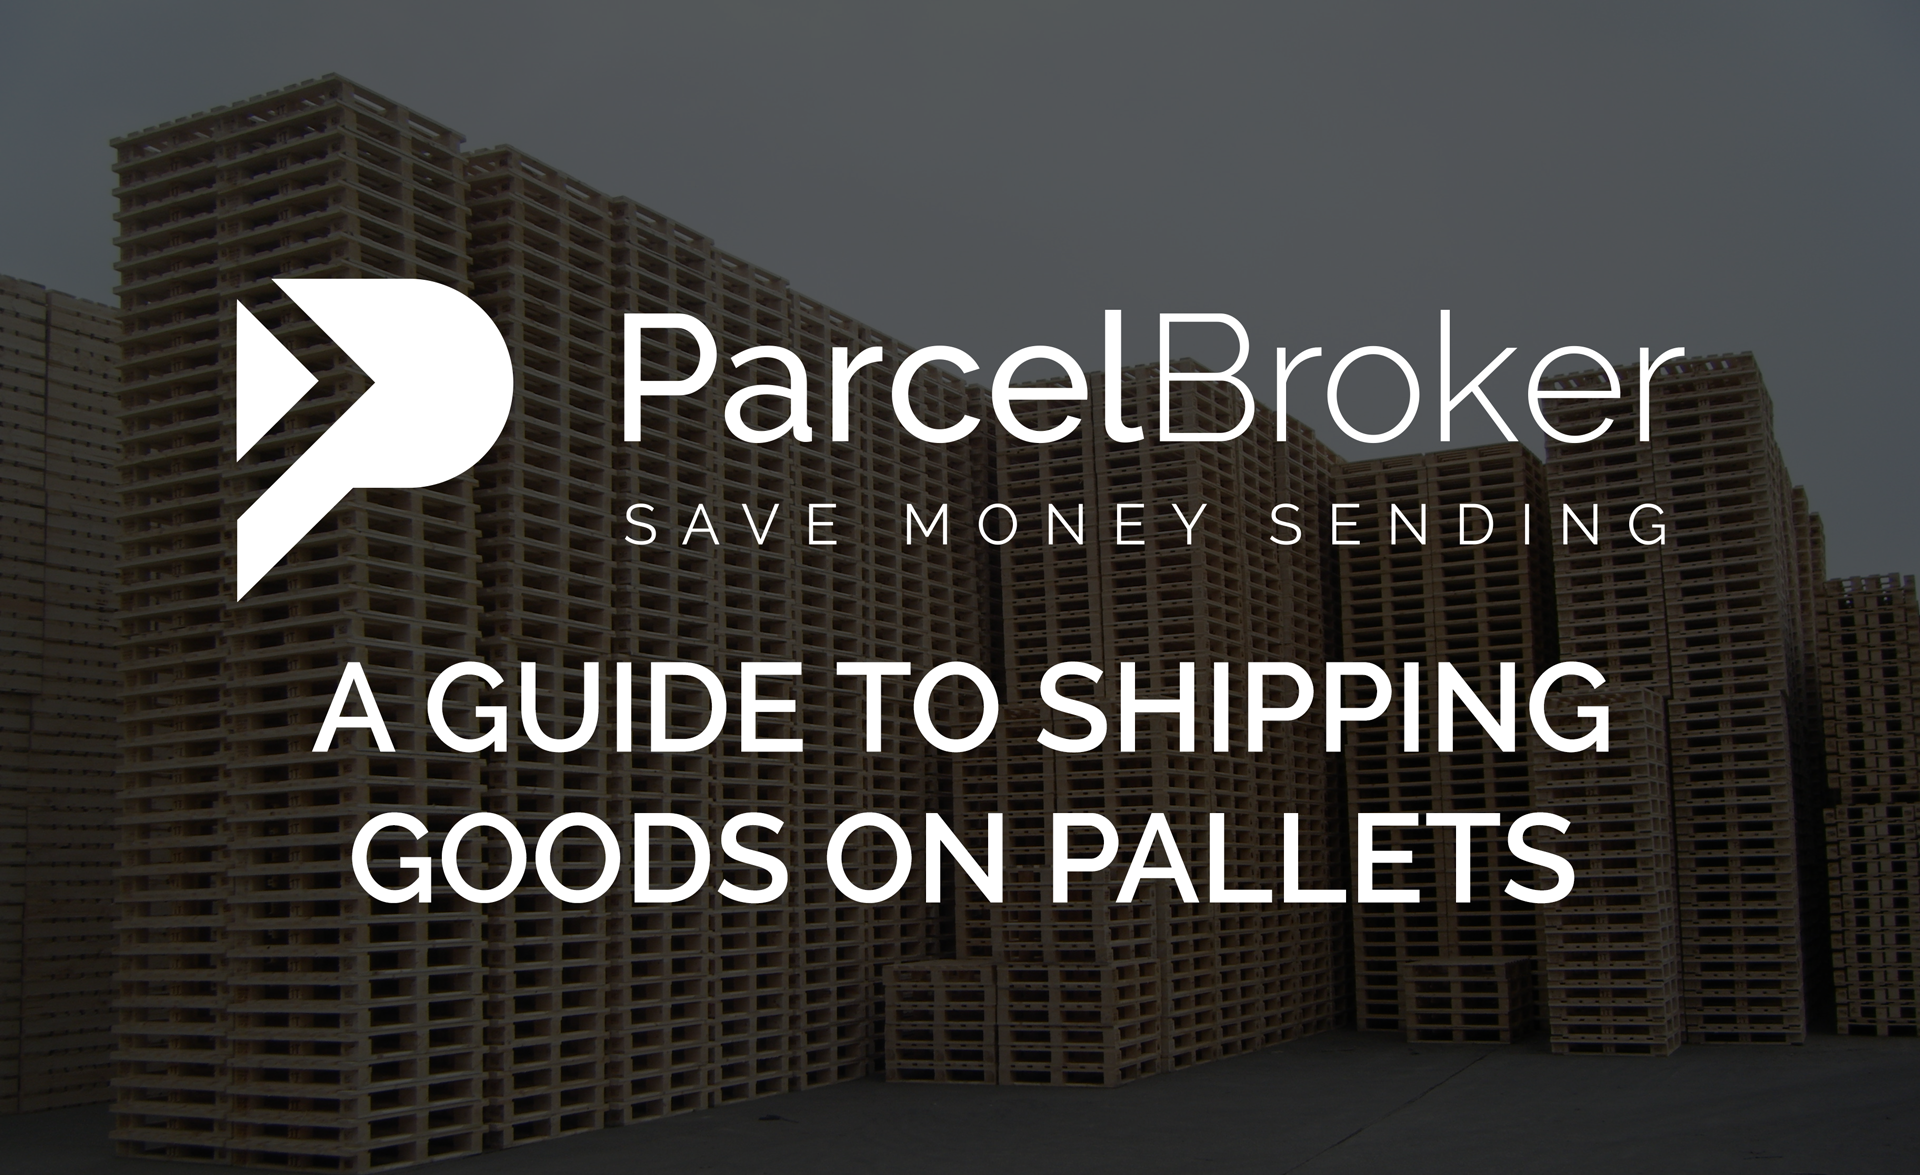 """""""A Guide To Shipping Goods On Pallets - ParcelBroker Blog"""